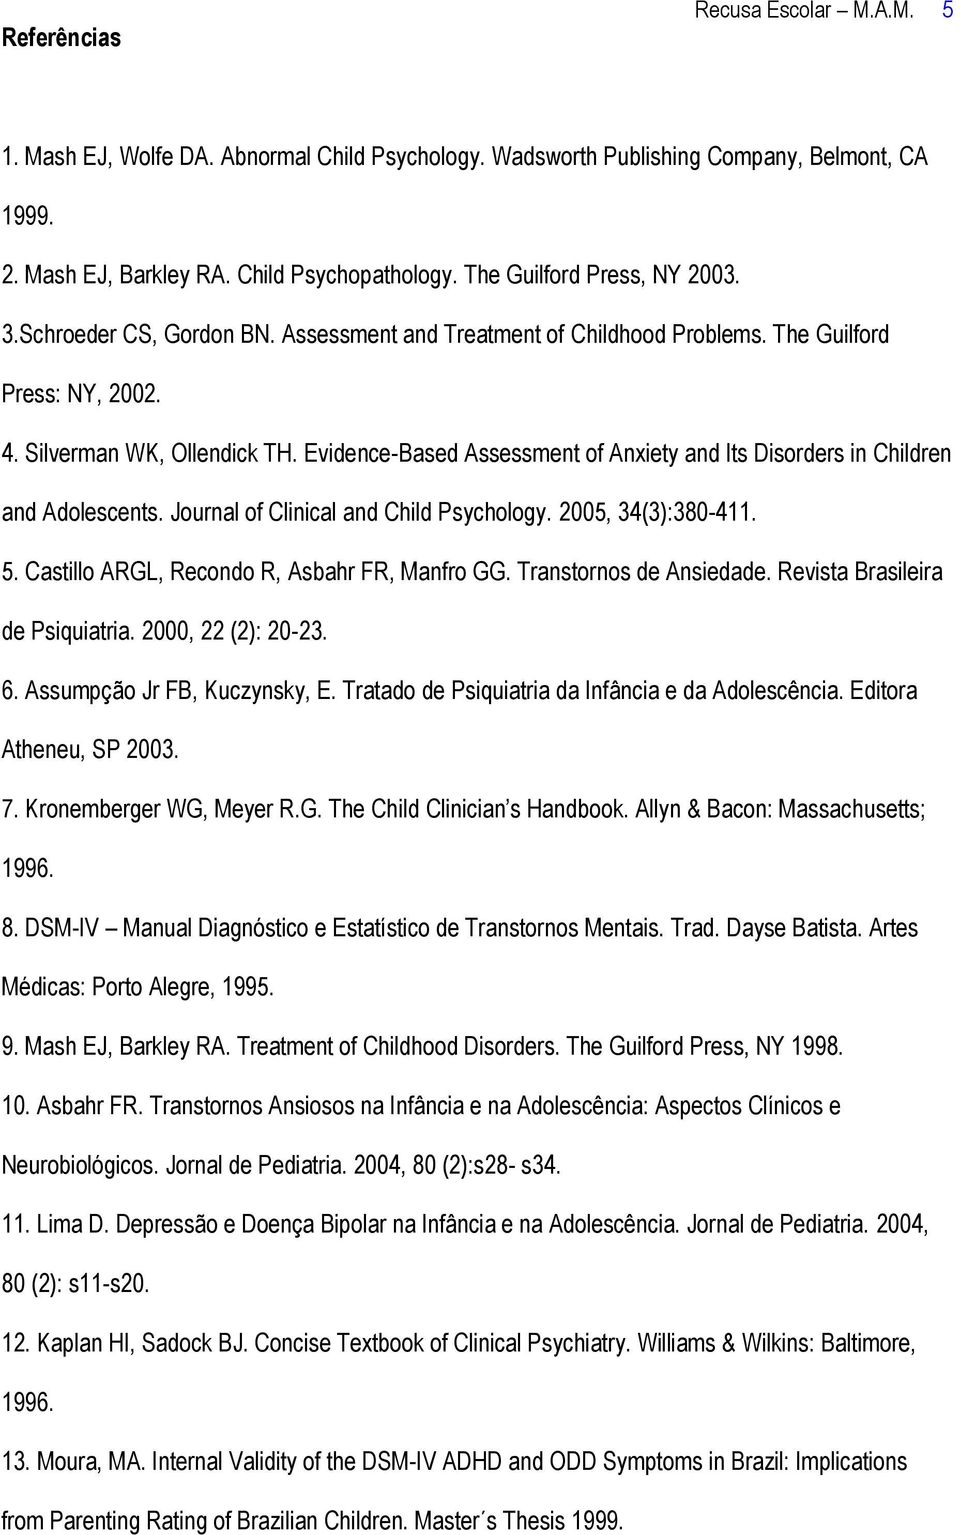 Evidence-Based Assessment of Anxiety and Its Disorders in Children and Adolescents. Journal of Clinical and Child Psychology. 2005, 34(3):380-411. 5. Castillo ARGL, Recondo R, Asbahr FR, Manfro GG.